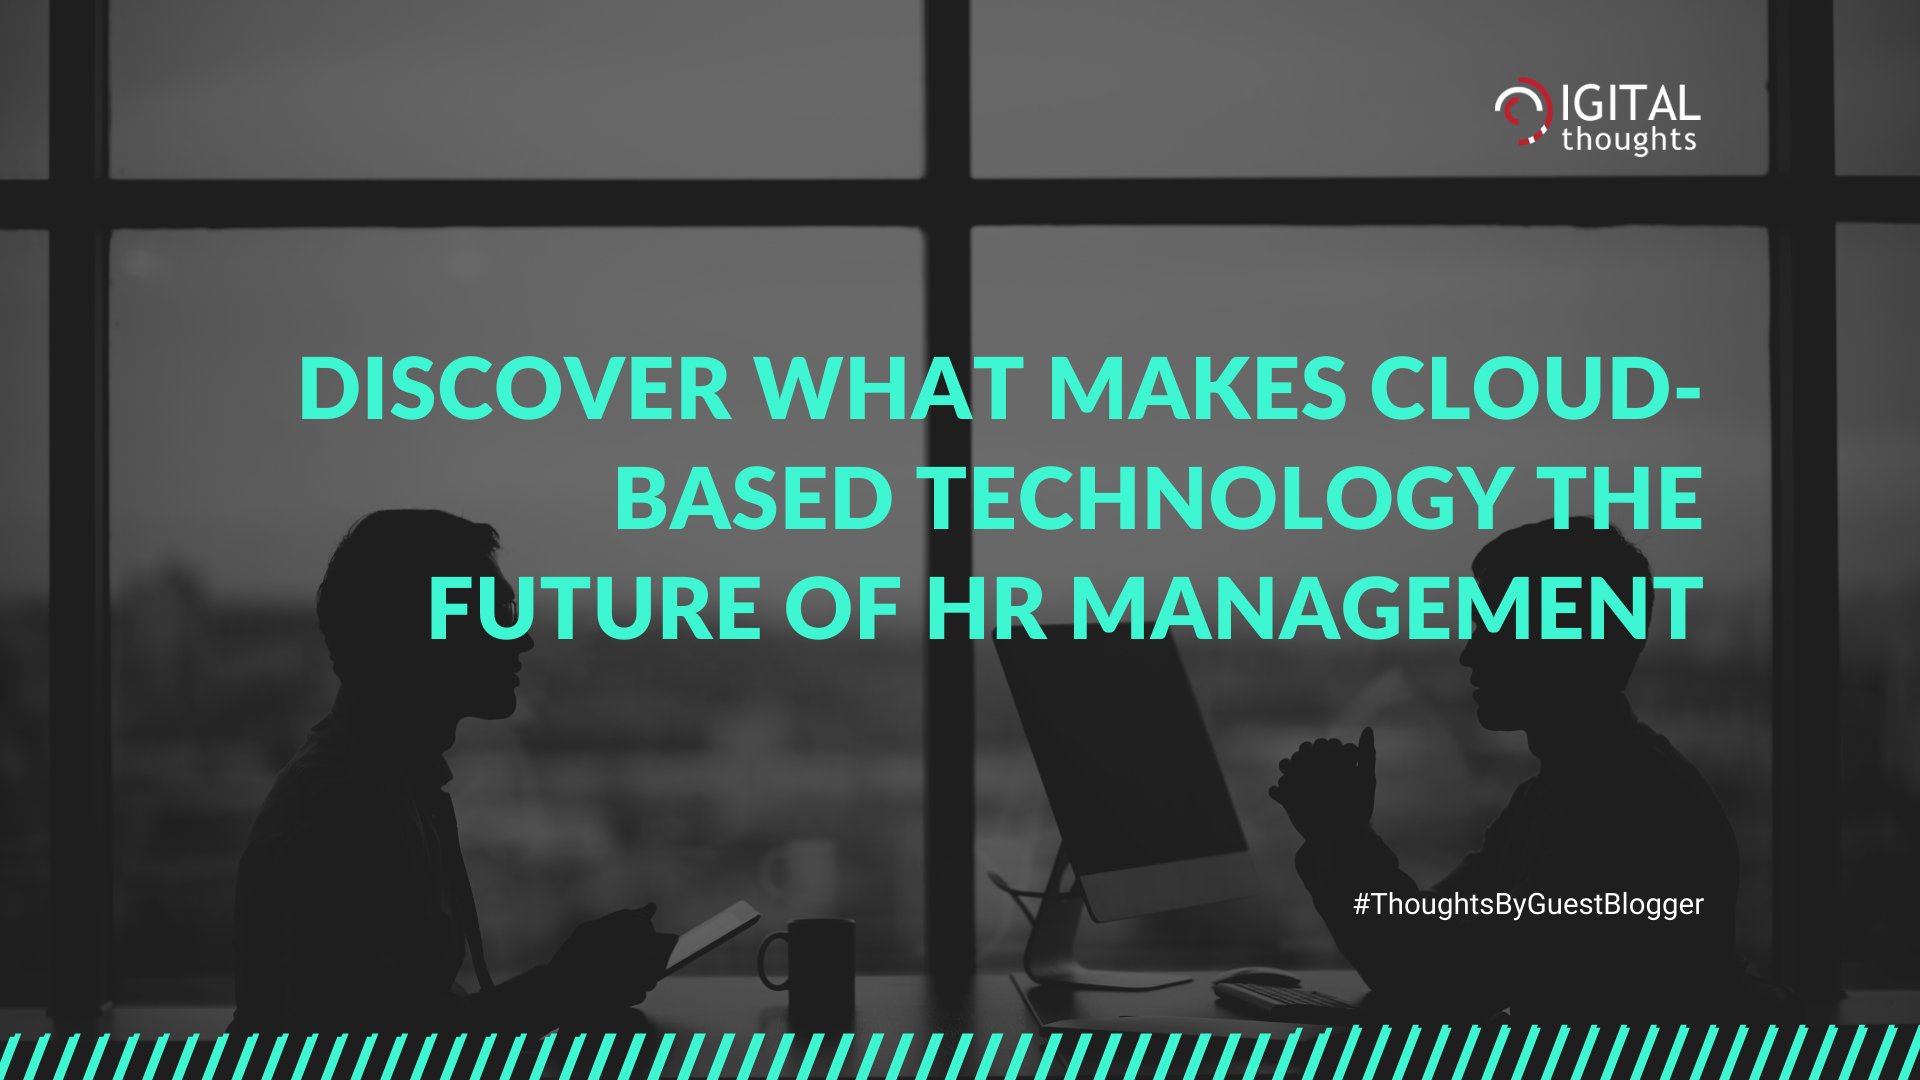 Cloud-based Technology is the Future of Human Resource Management